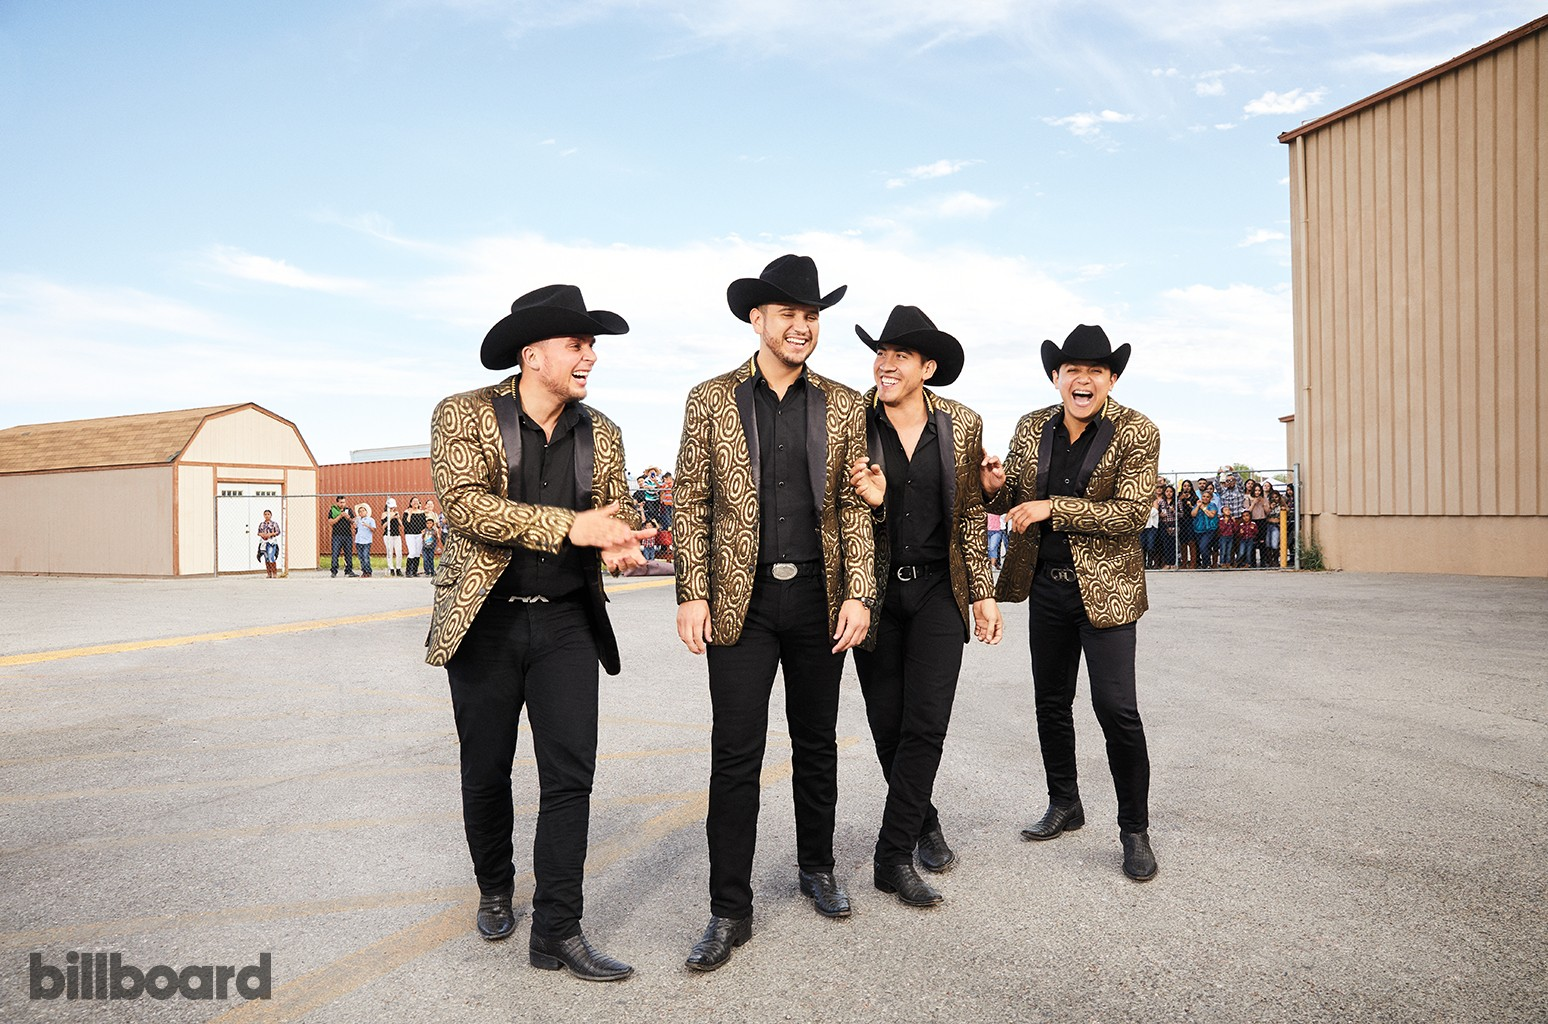 A Good Day For Calibre 50: 'Vamos Bien' Hits No. 1 on Regional Mexican Airplay Chart